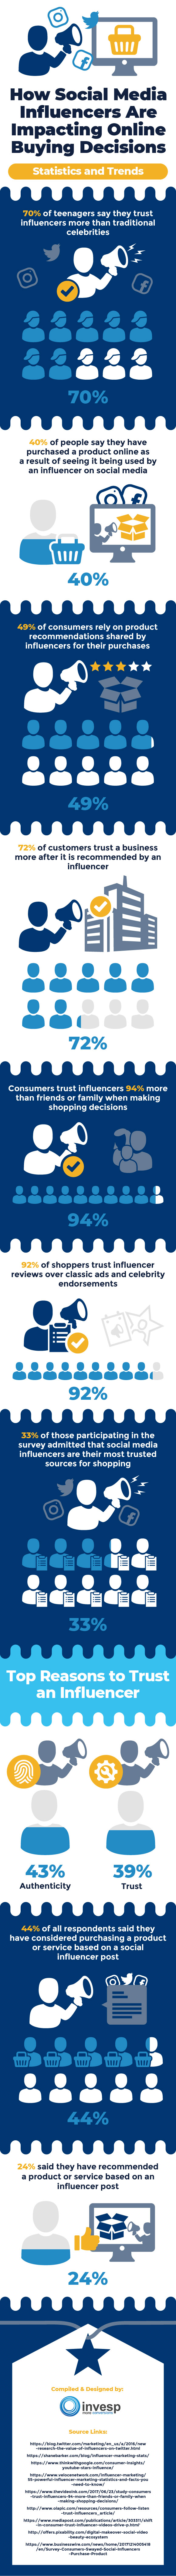 How Social Media Influencers Are Impacting Online Buying Decisions-